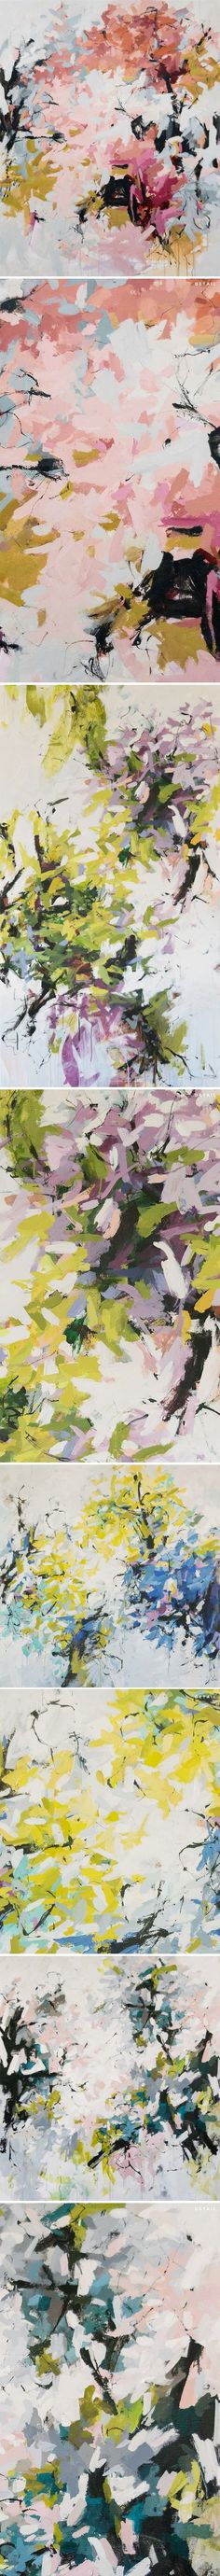 large-scale floral abstracts carlos ramirez